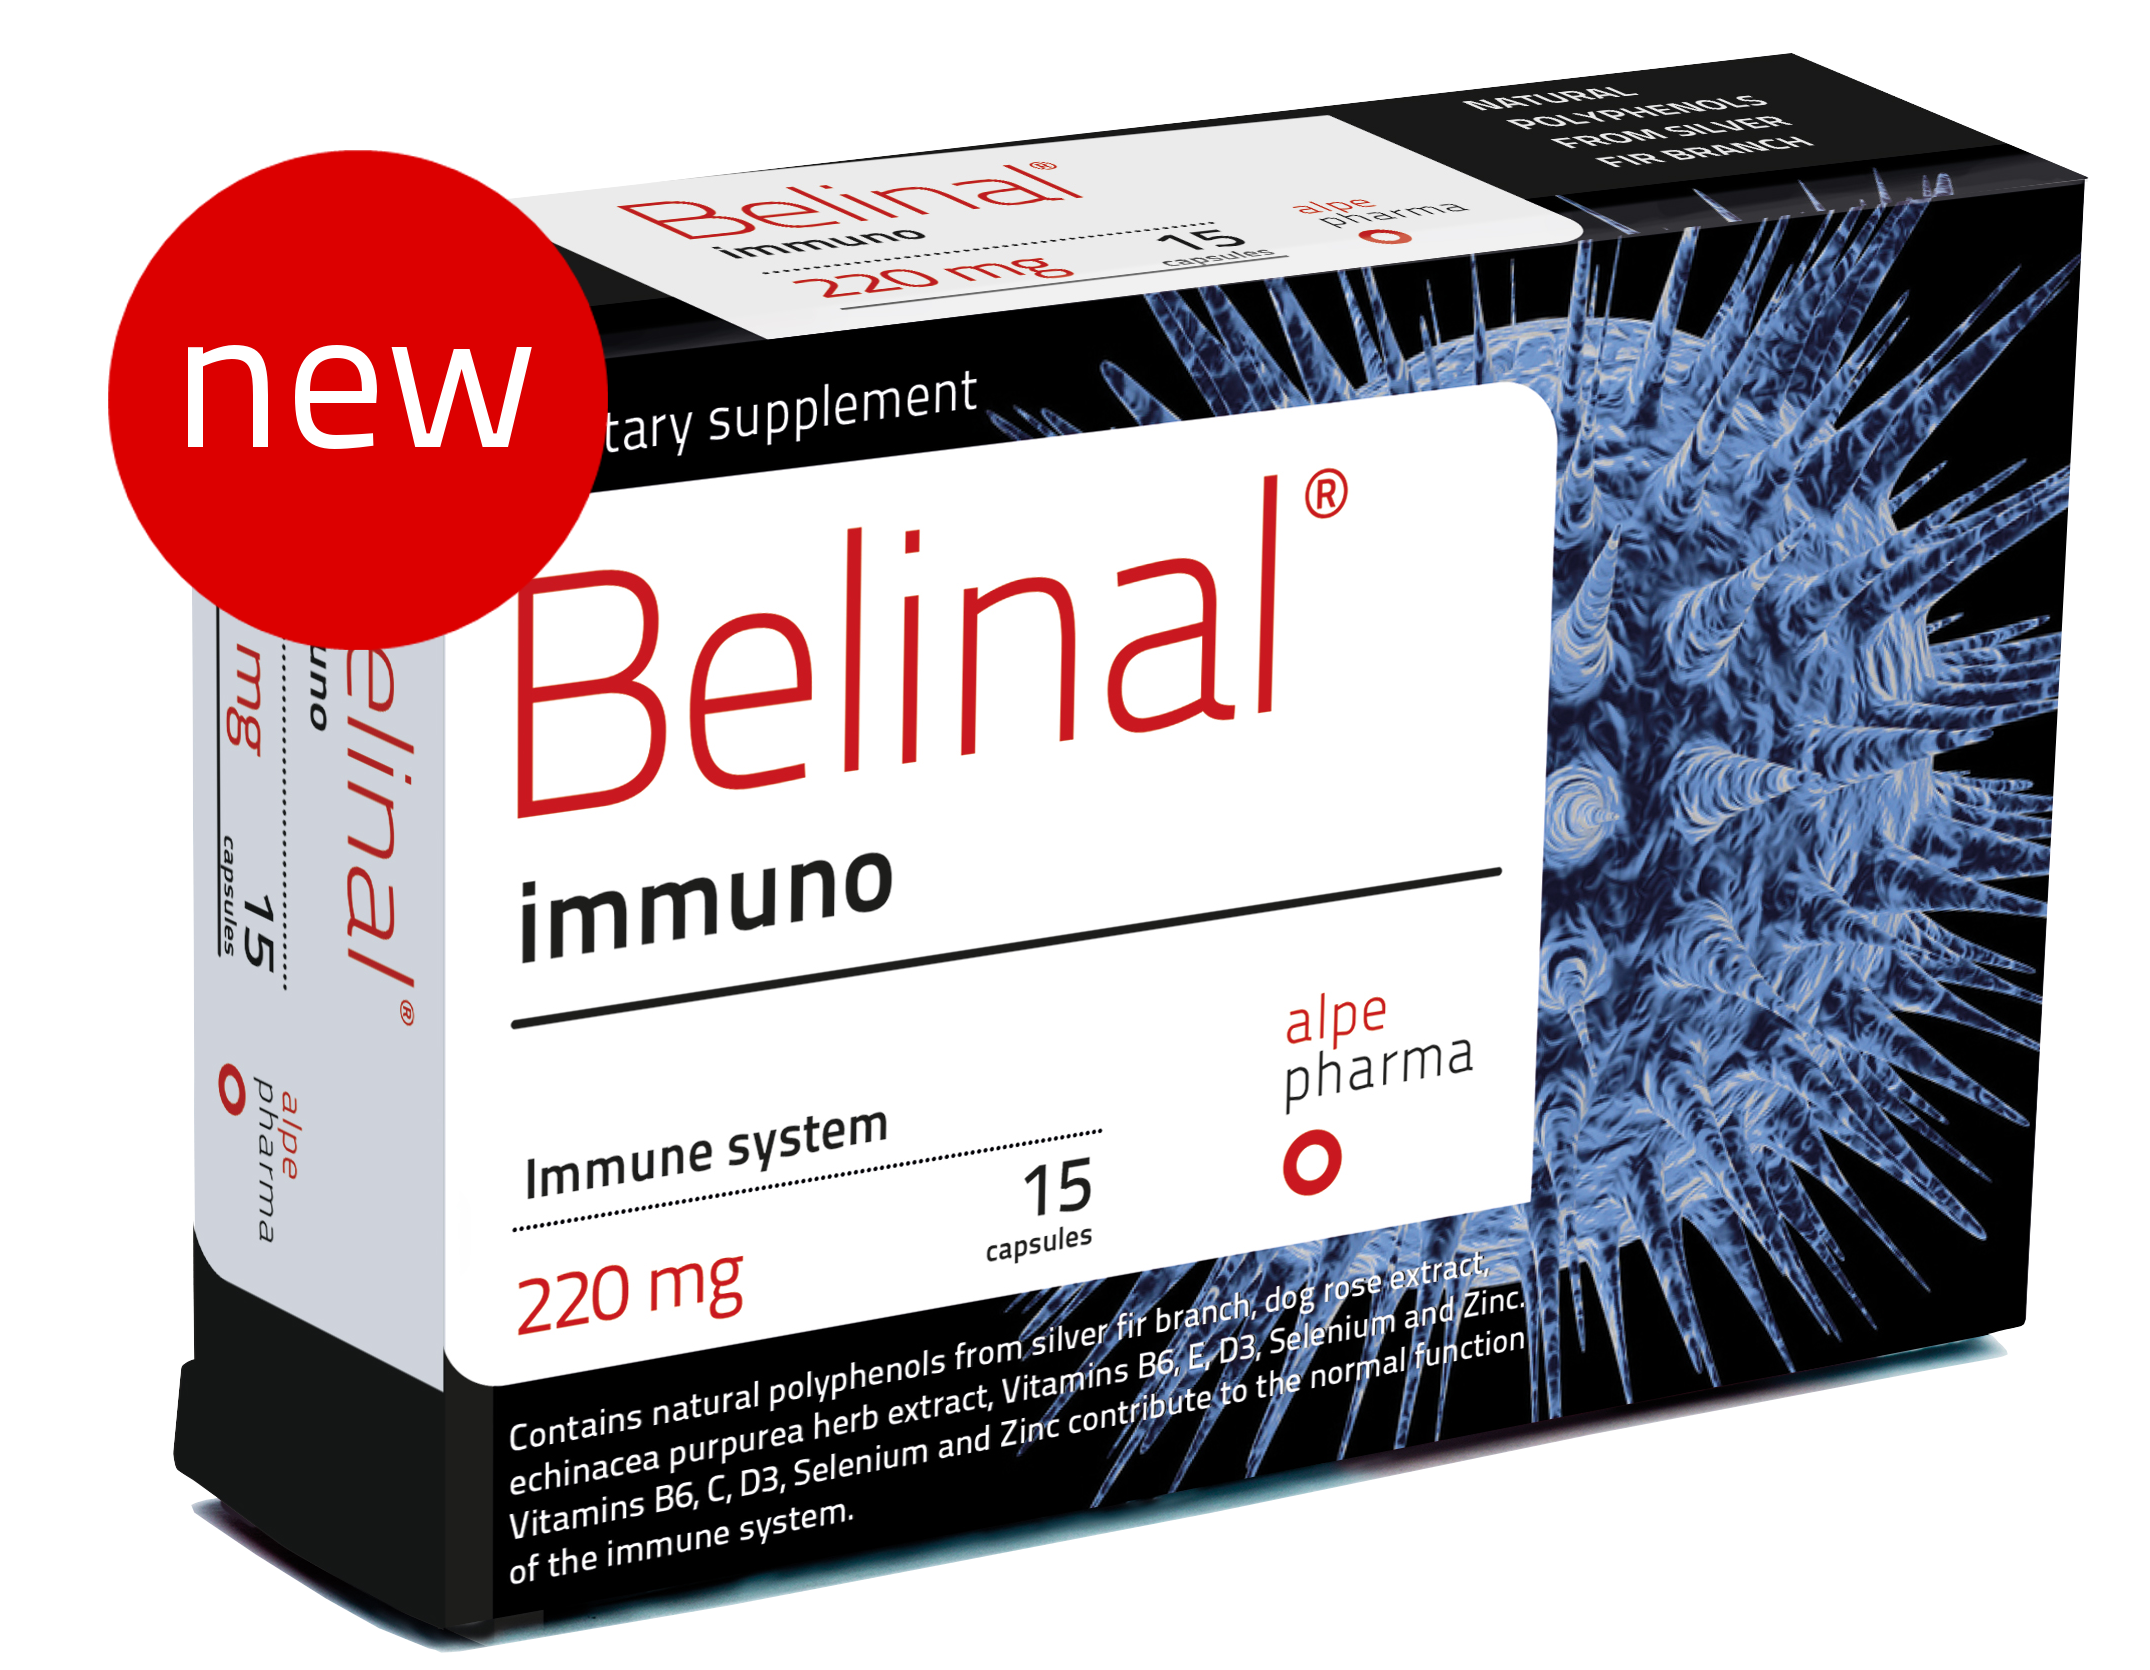 belinal immuno - silver fir - cold recovery - flu recovery - immune system support